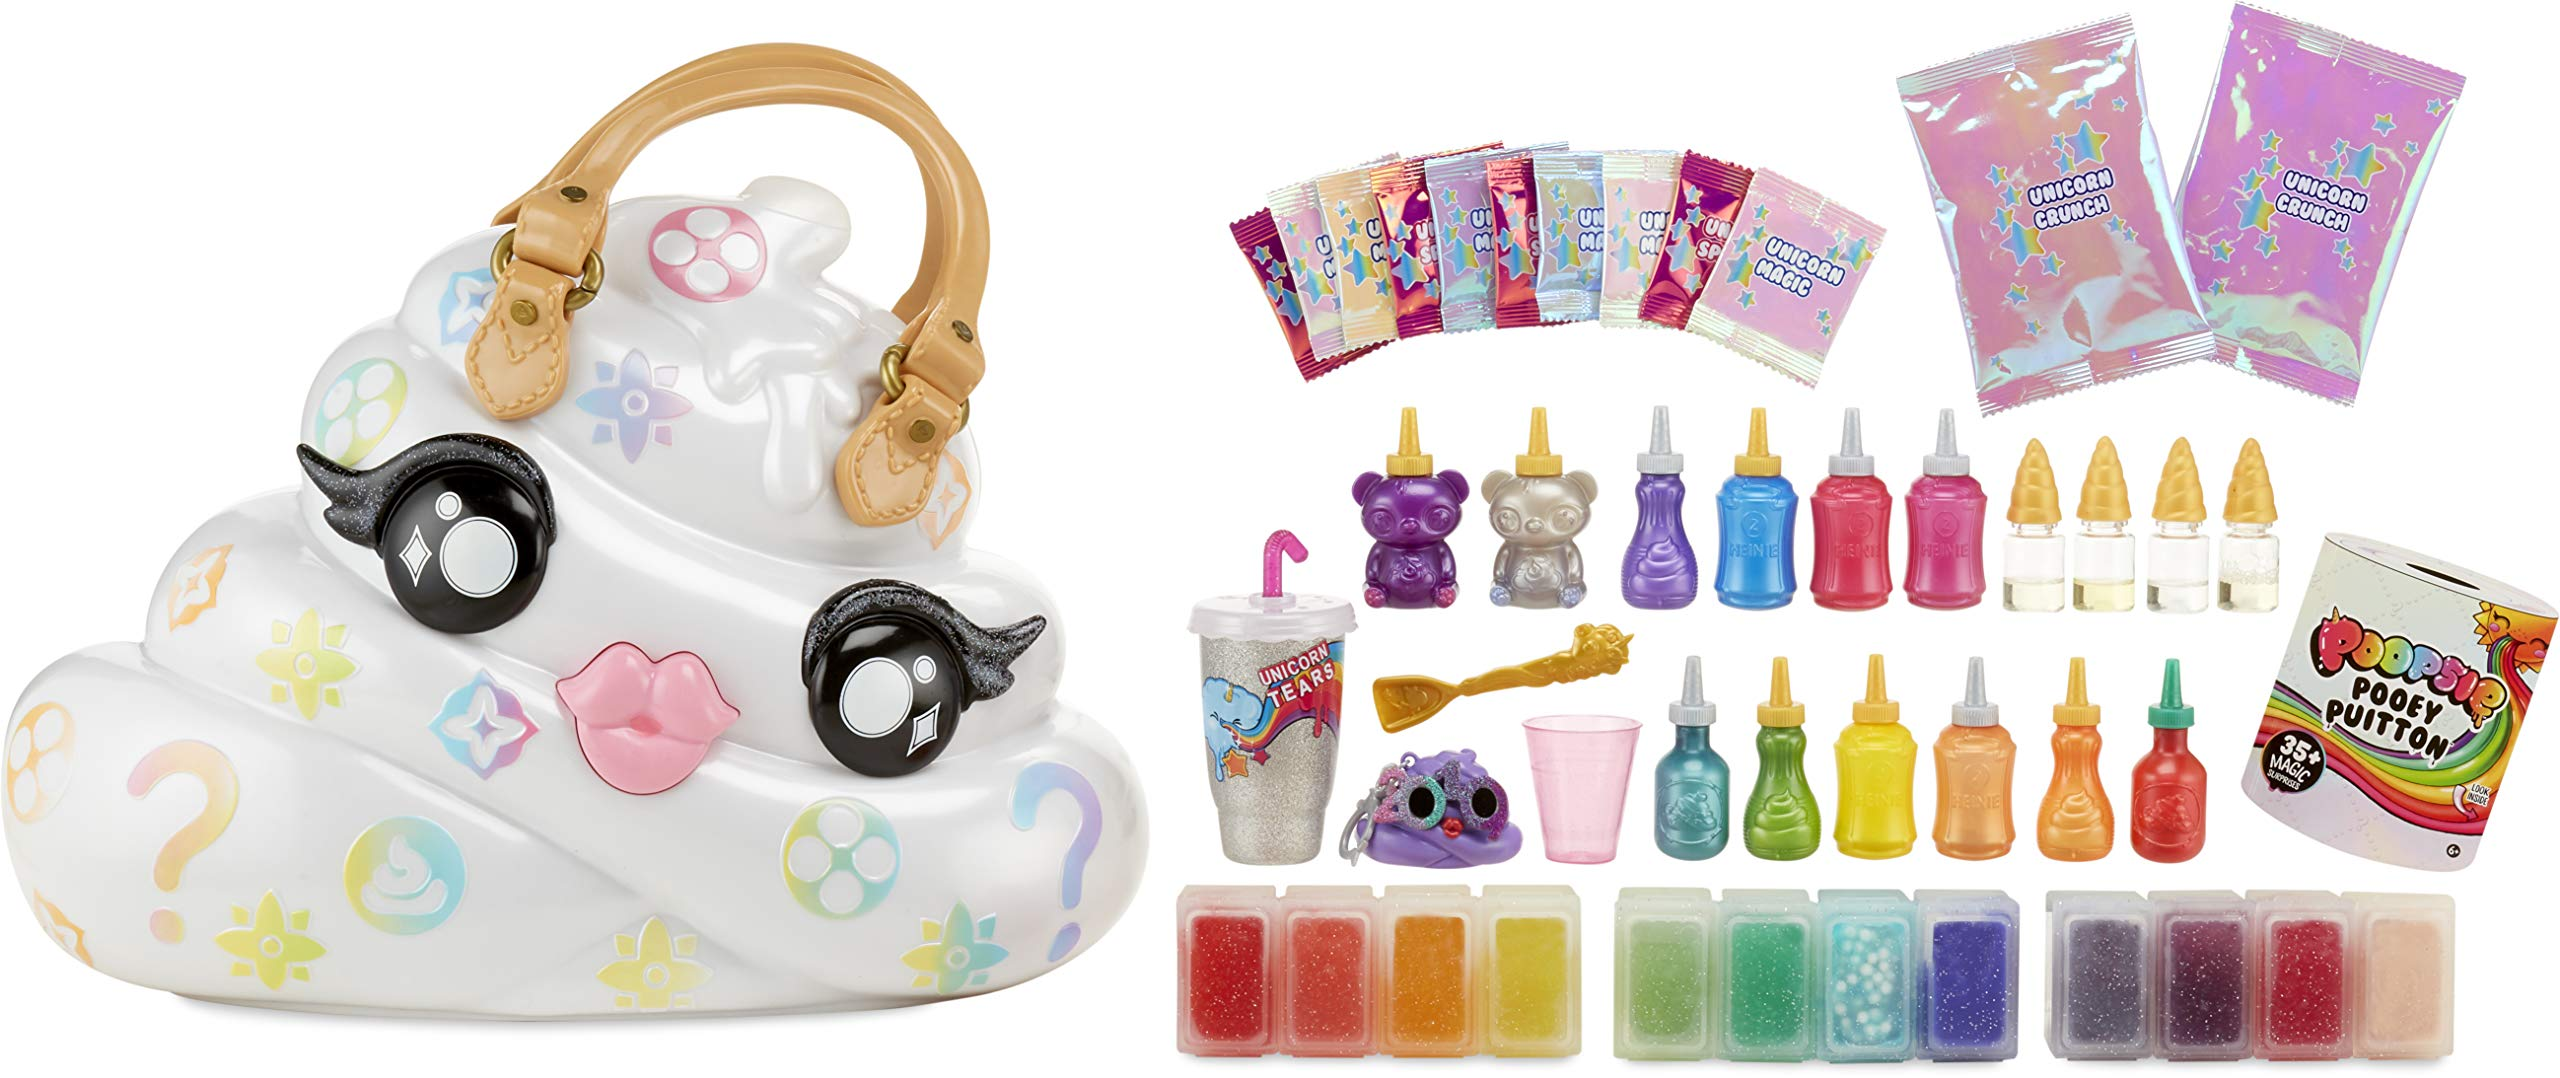 Poopsie Pooey Puitton Slime Surprise Slime Kit & Carrying Case